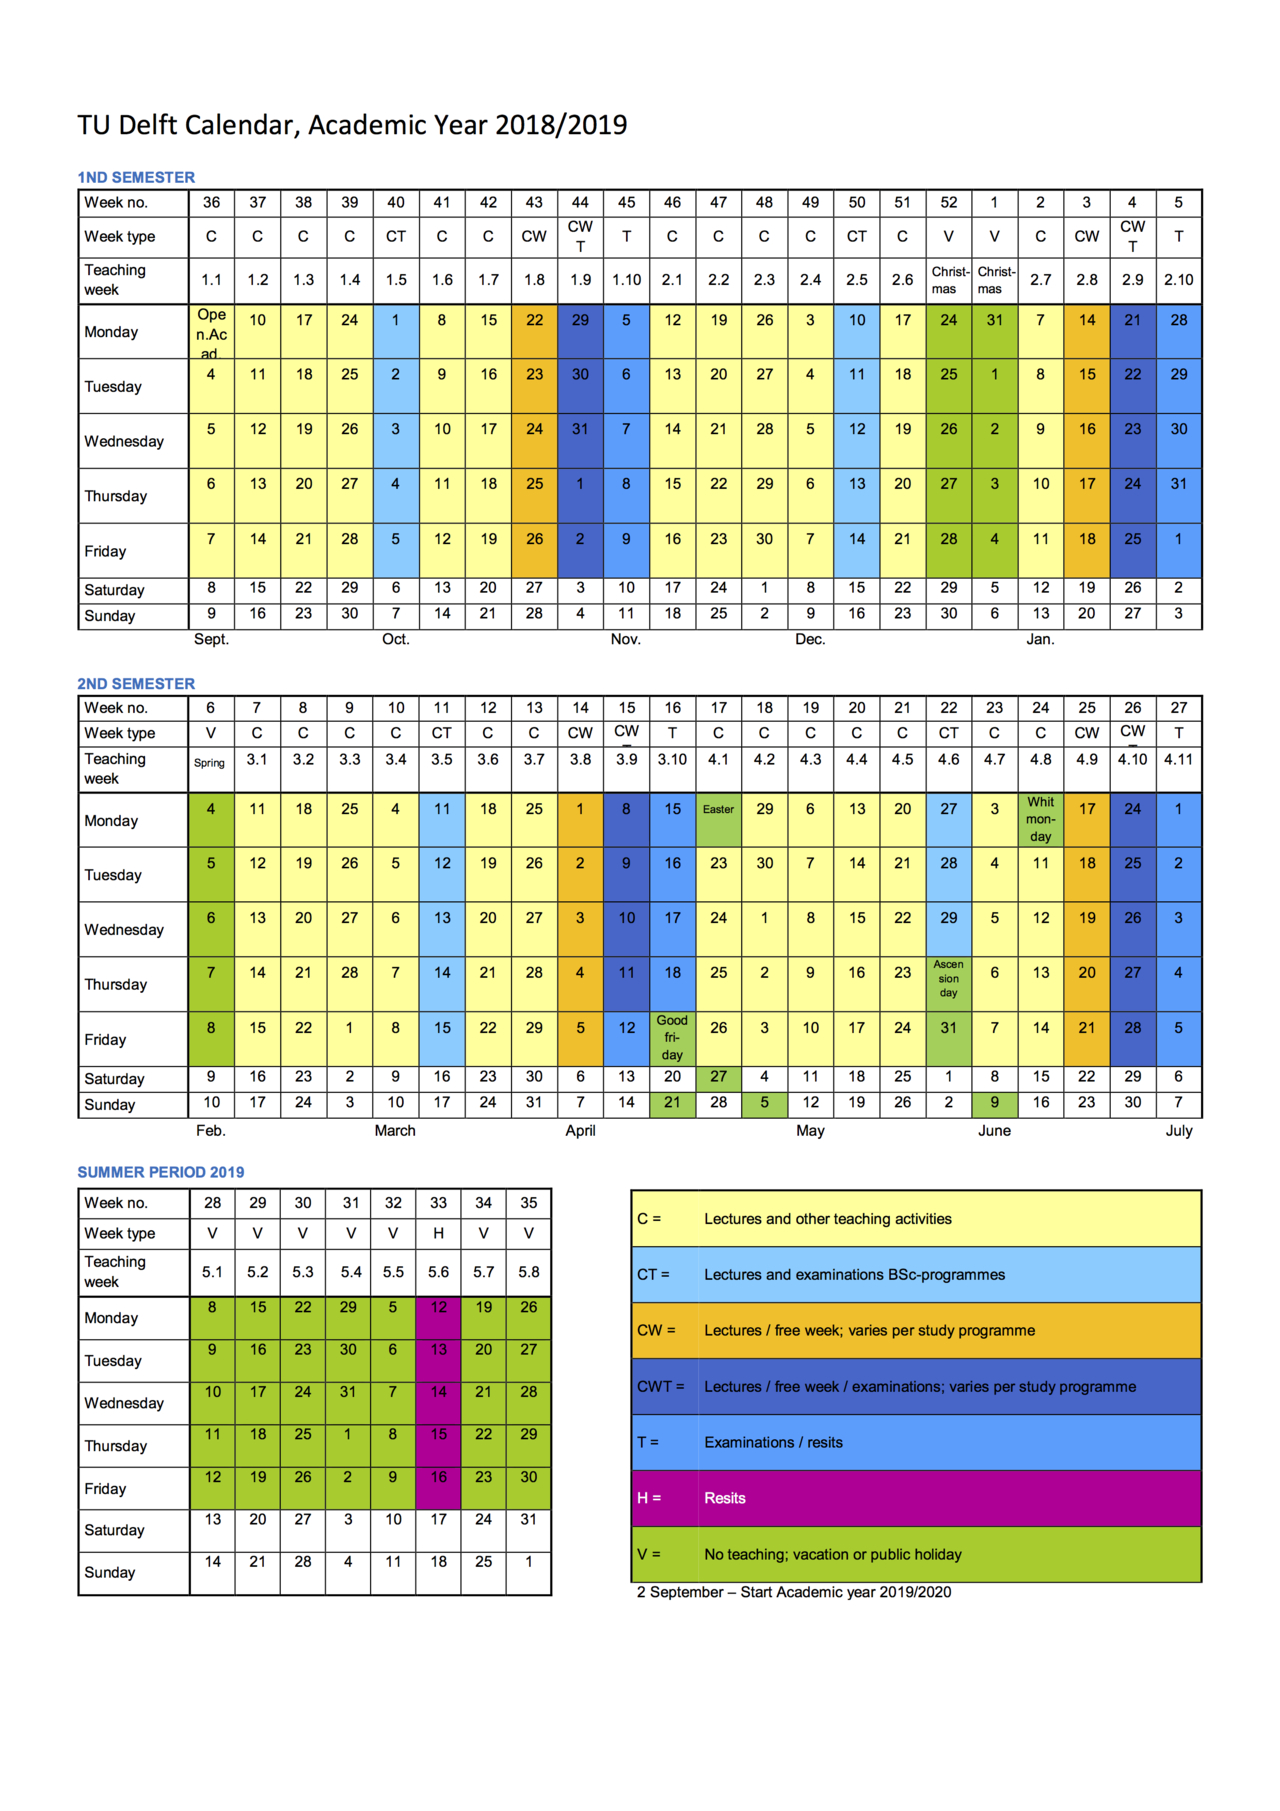 Academic Calendar pertaining to Tu Delft Time Table Boukunde 2020